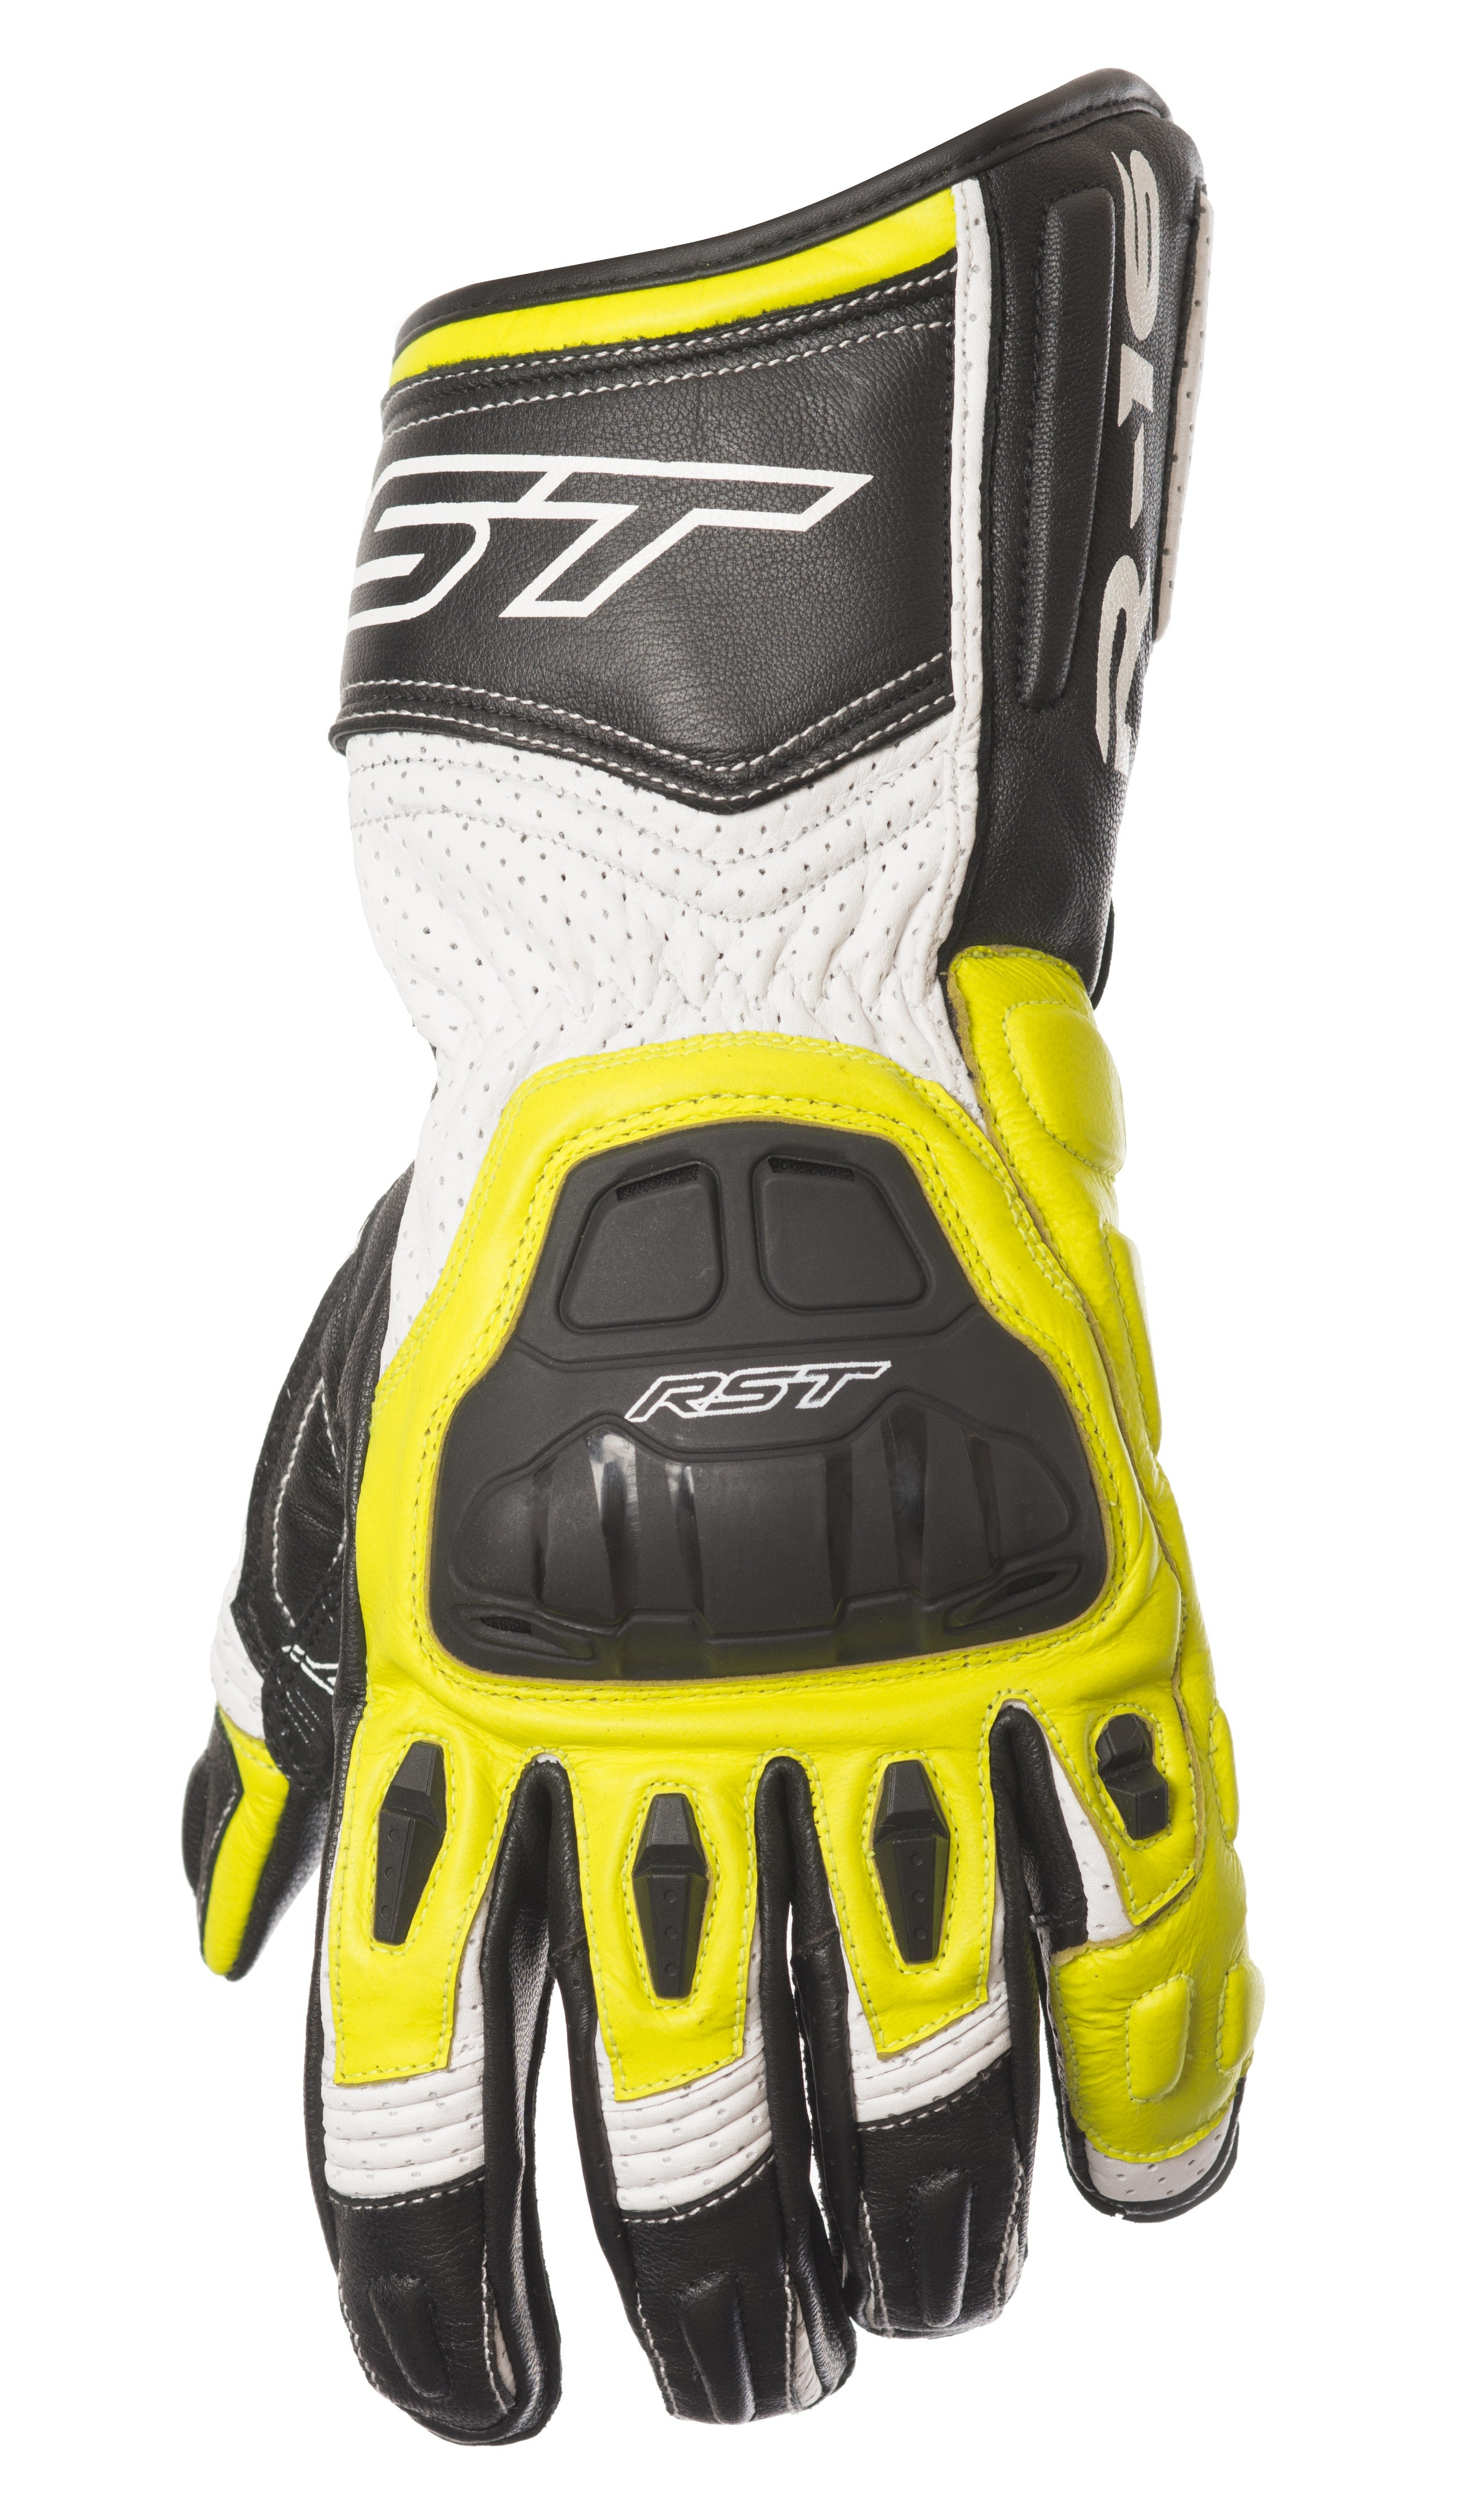 Motorcycle gloves distributor -  Rst Yellow Motorcycle Glove